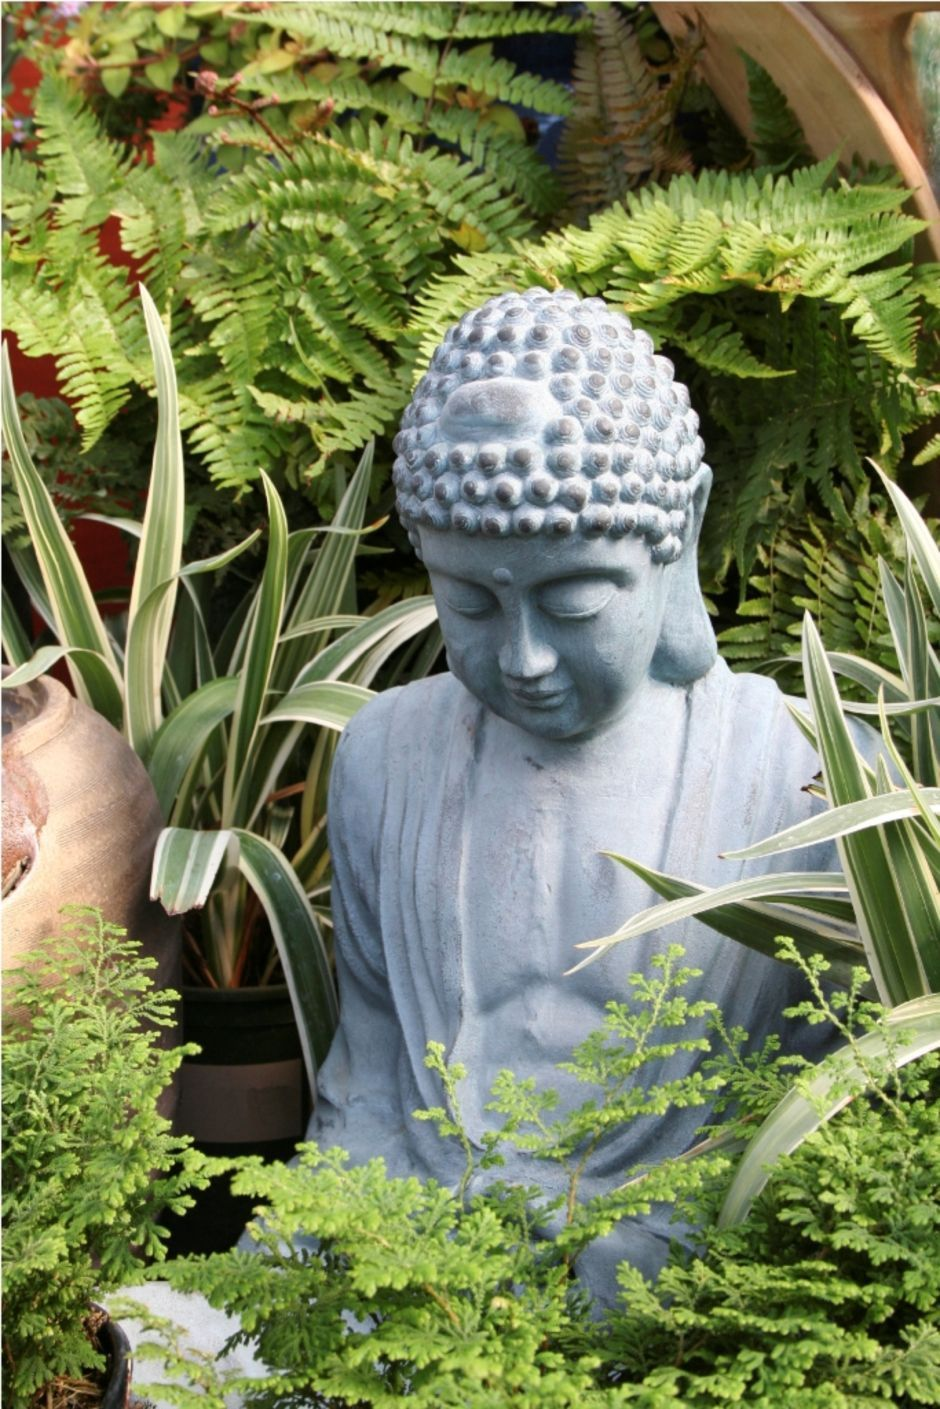 Awesome Buddha Statue For Garden Decorations Buddha Garden Buddha Statue Garden Garden Statues